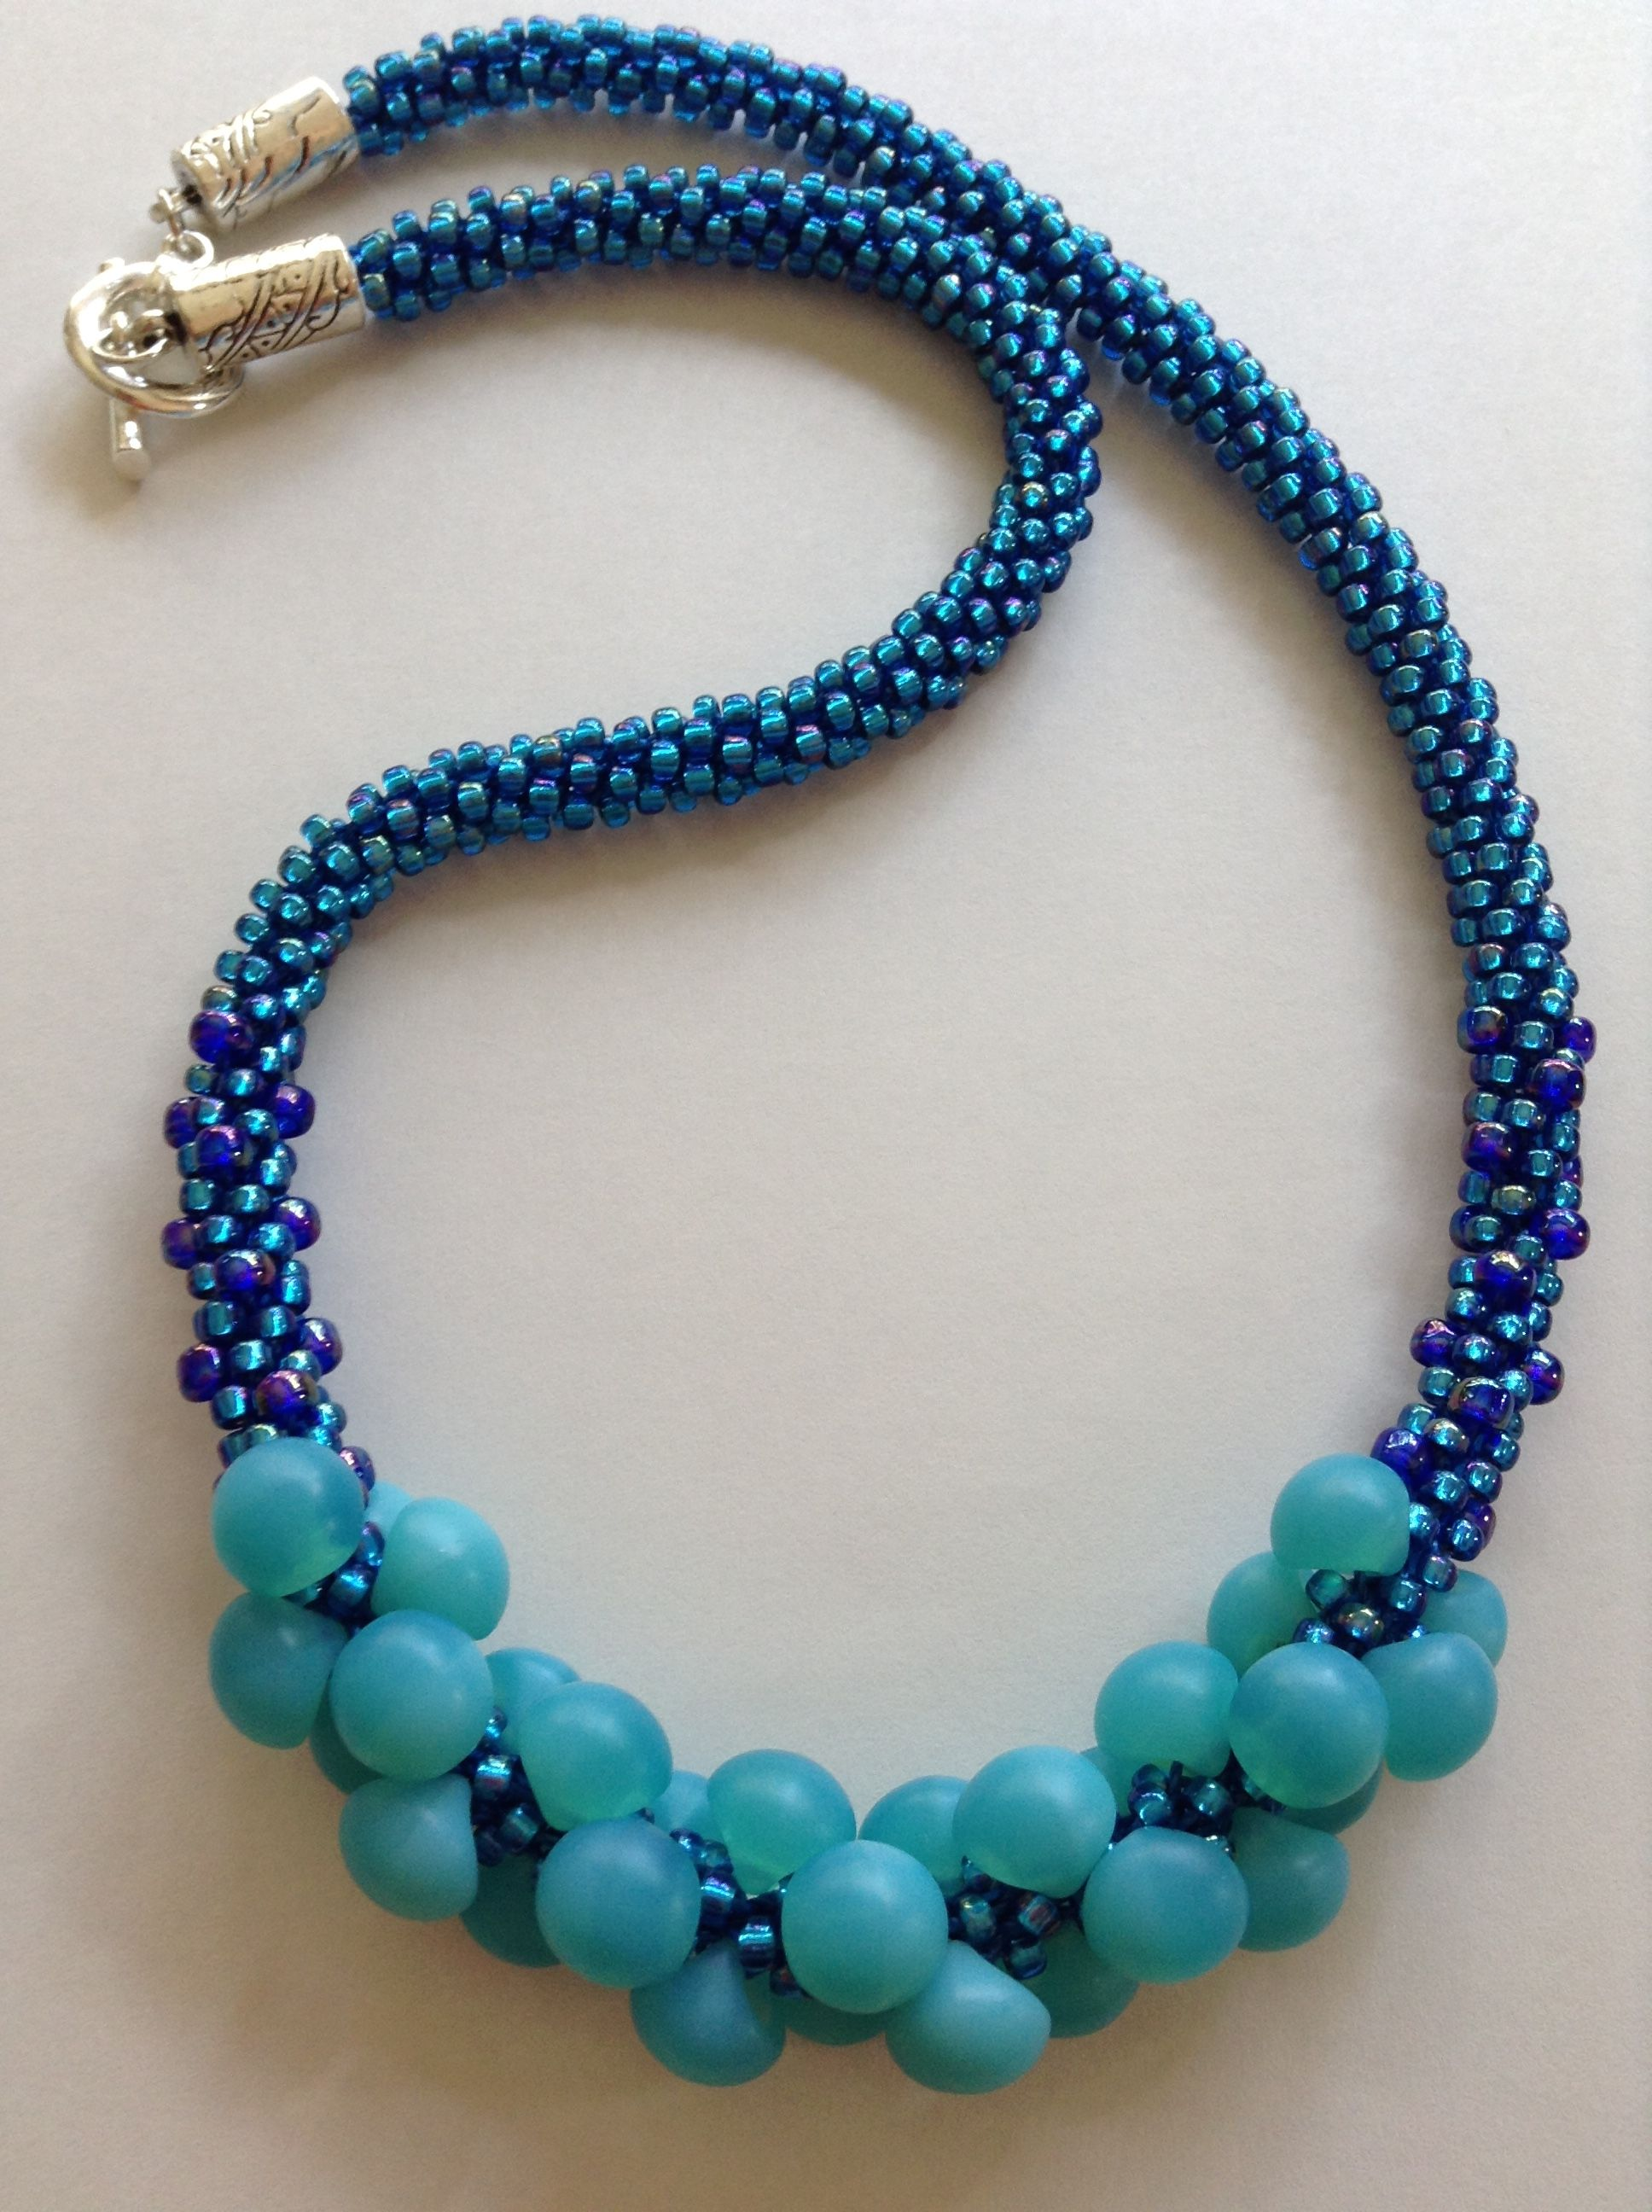 Pin by Tracey Mack on Kumihimo-by Tracey Mack | Pinterest | Beads ...